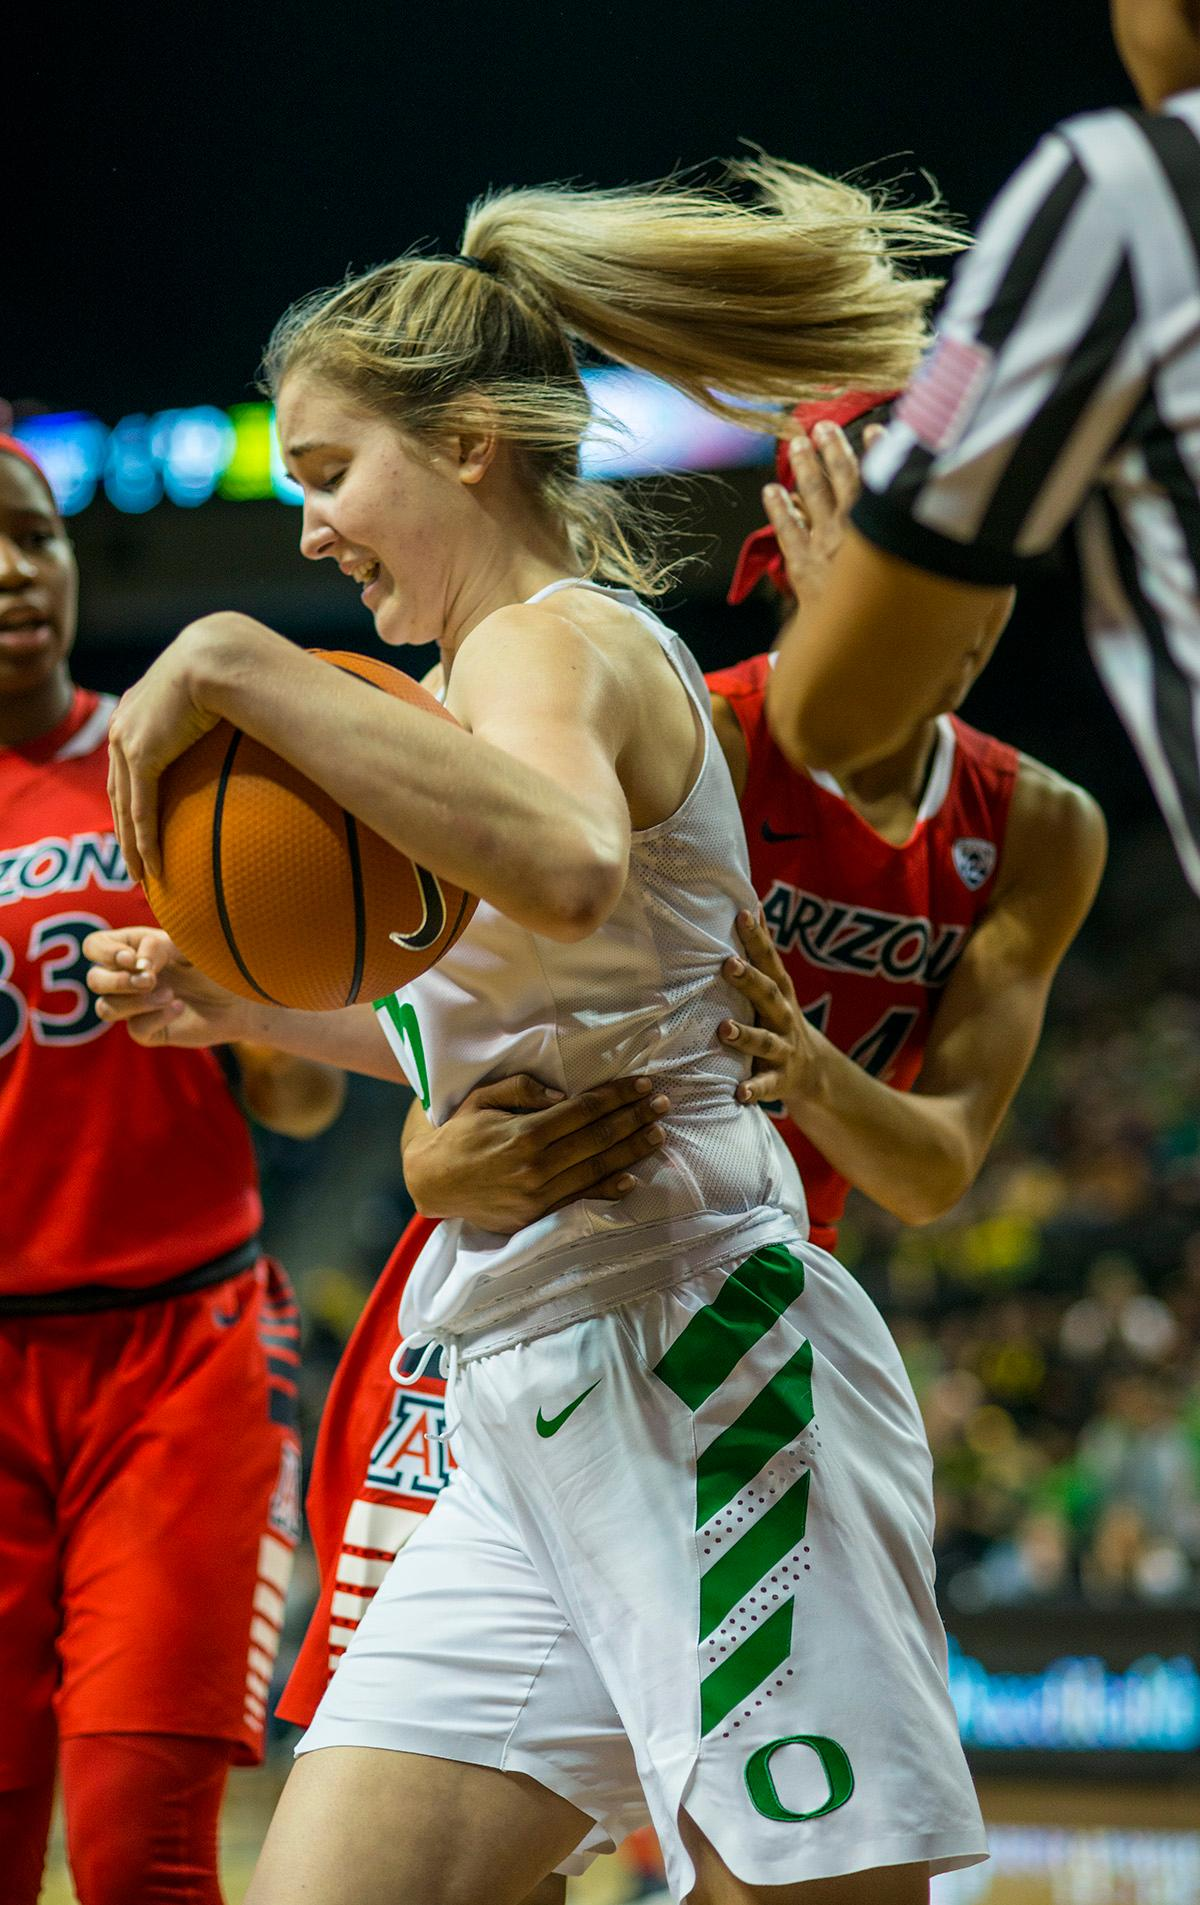 Oregon Ducks Anneli Maley (#15) attempts to keep control of the ball as she is grabbed by Arizona Wildcats Sam Thomas (#14). The Oregon Ducks defeated the Arizona Wildcats 62-44 on Friday night at Matthew Knight Arena. The Ducks are now 5-0 in conference play, for the first time in school history, and first place in Pac 12. Sabrina Ionescu led with 22 points including four three-pointers and eleven rebounds. Ruthy Hebard added 14 points. Photo by Rhianna Gelhart, Oregon News Lab